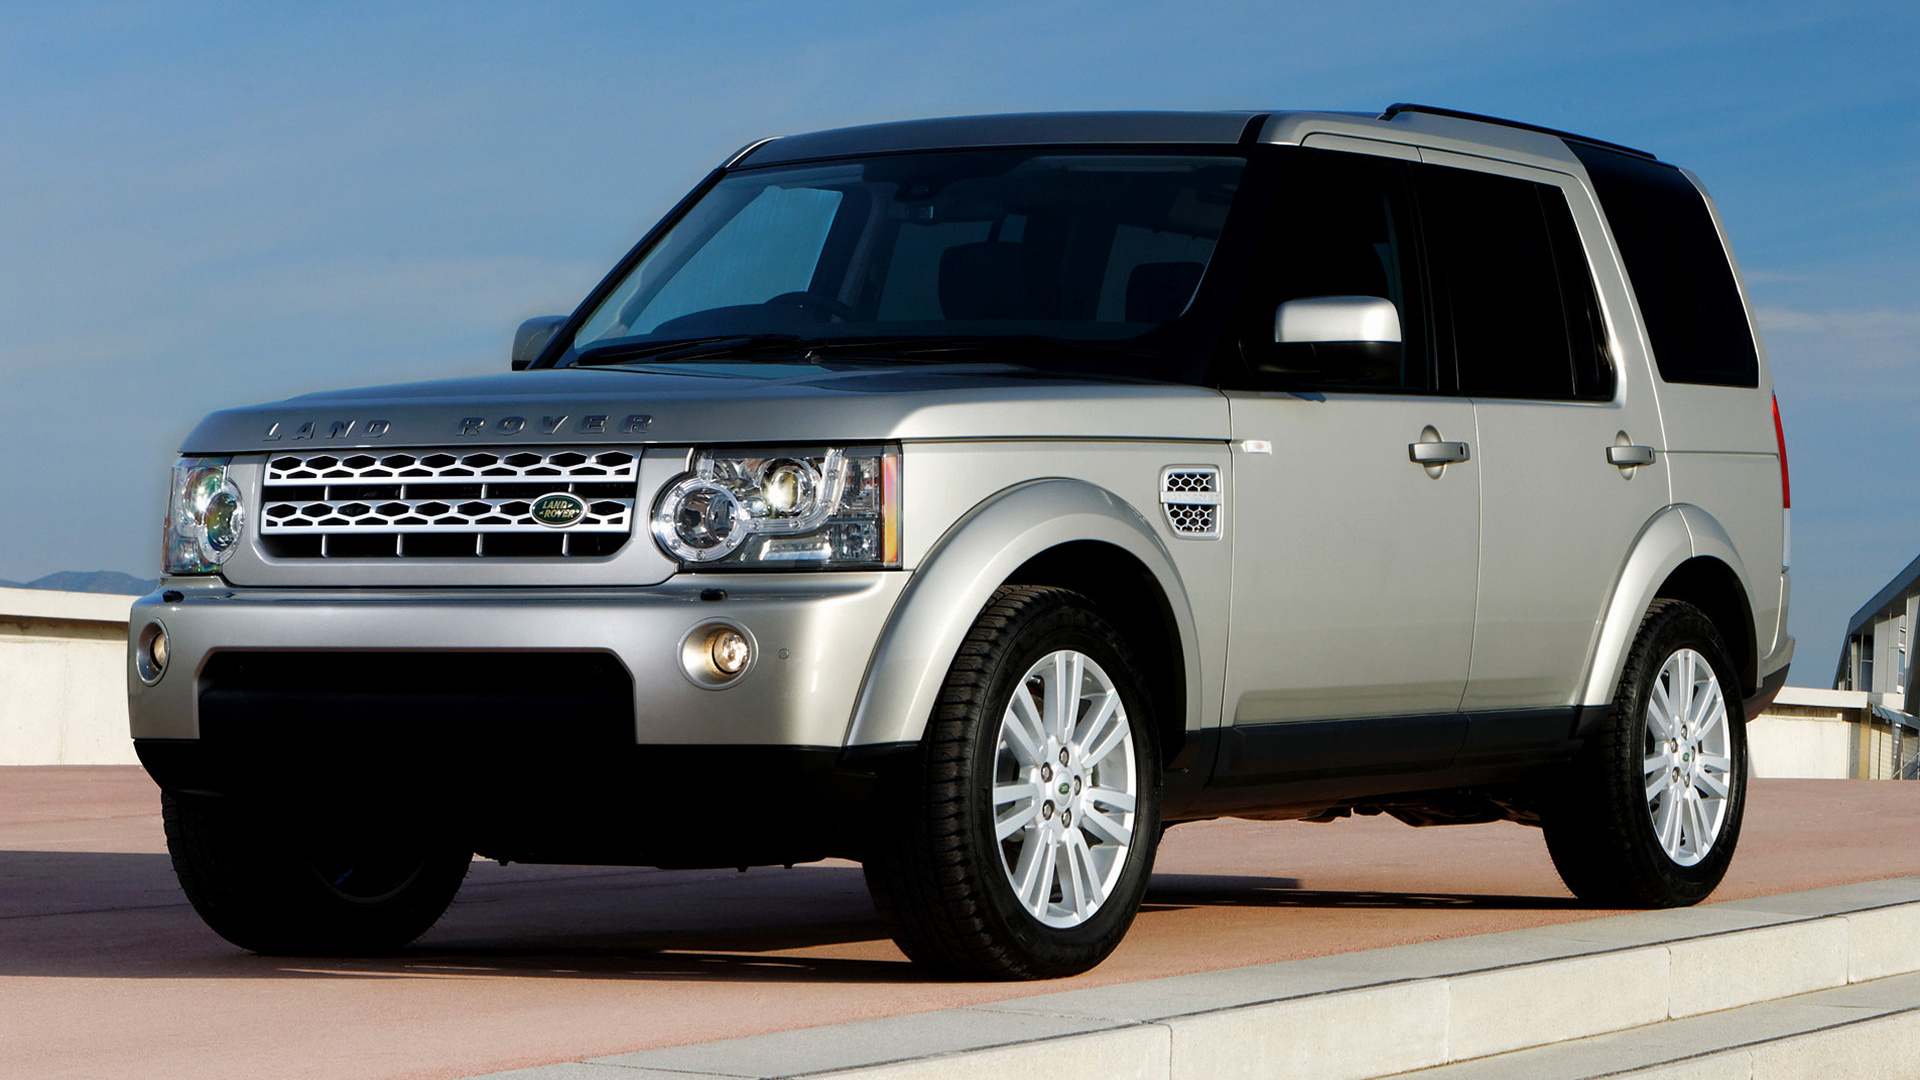 Luxury Car Brands >> 2009 Land Rover Discovery 4 HSE (UK) - Wallpapers and HD Images | Car Pixel